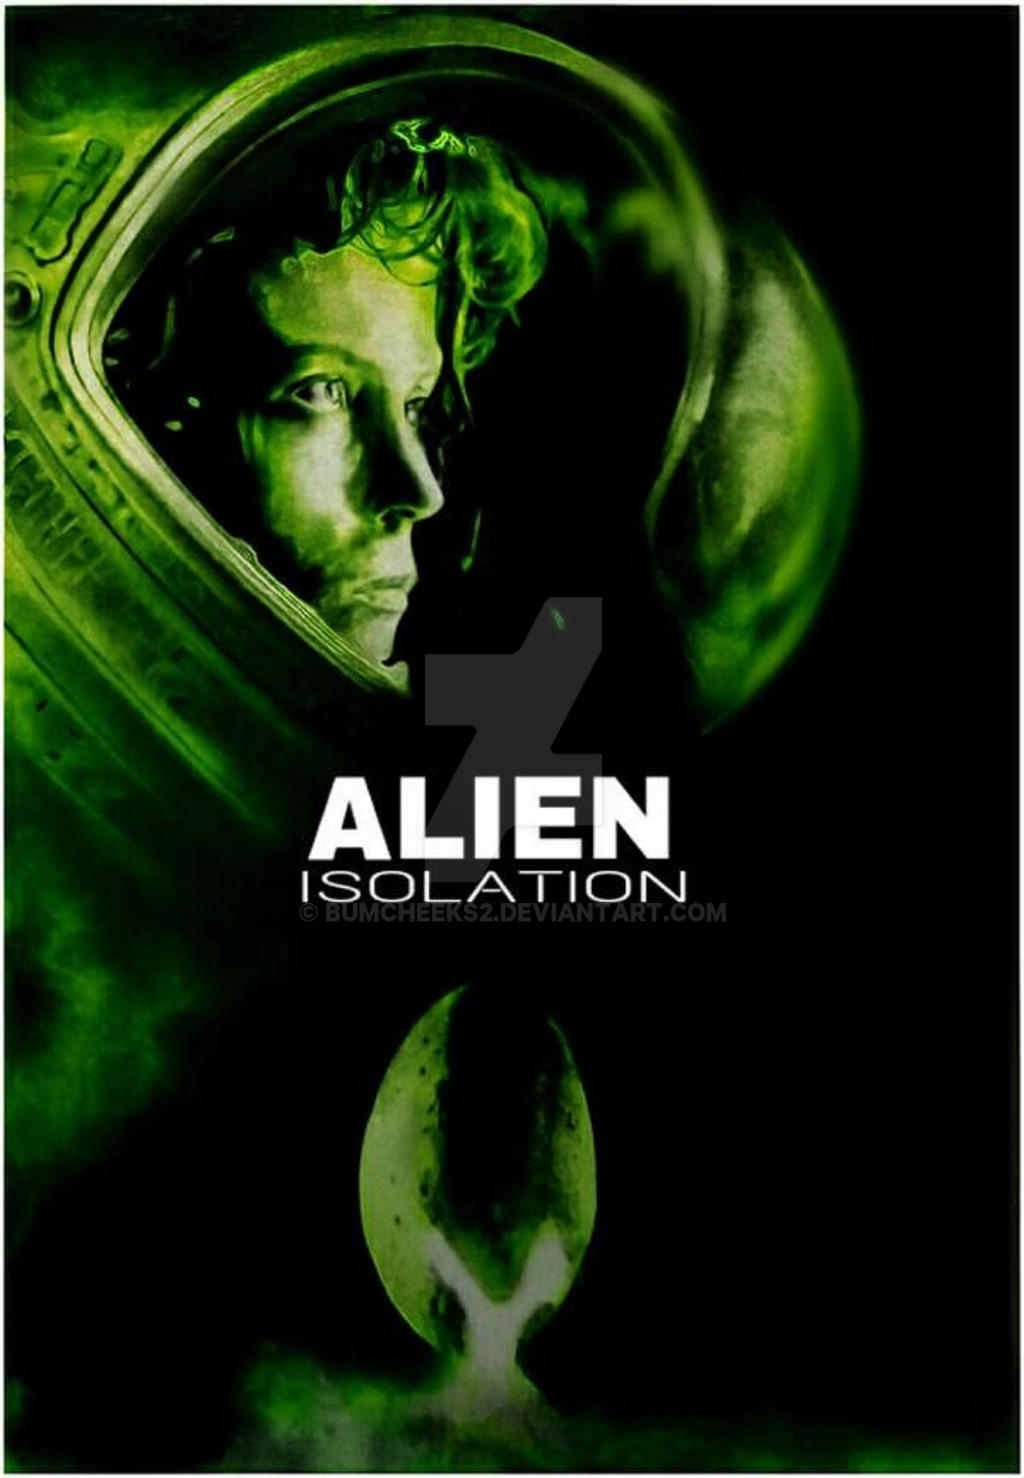 editing methods for alien in This assumes, of course, that the aliens in question haven't already figured out more sophisticated (or just very different) methods for detecting a planet's habitability.